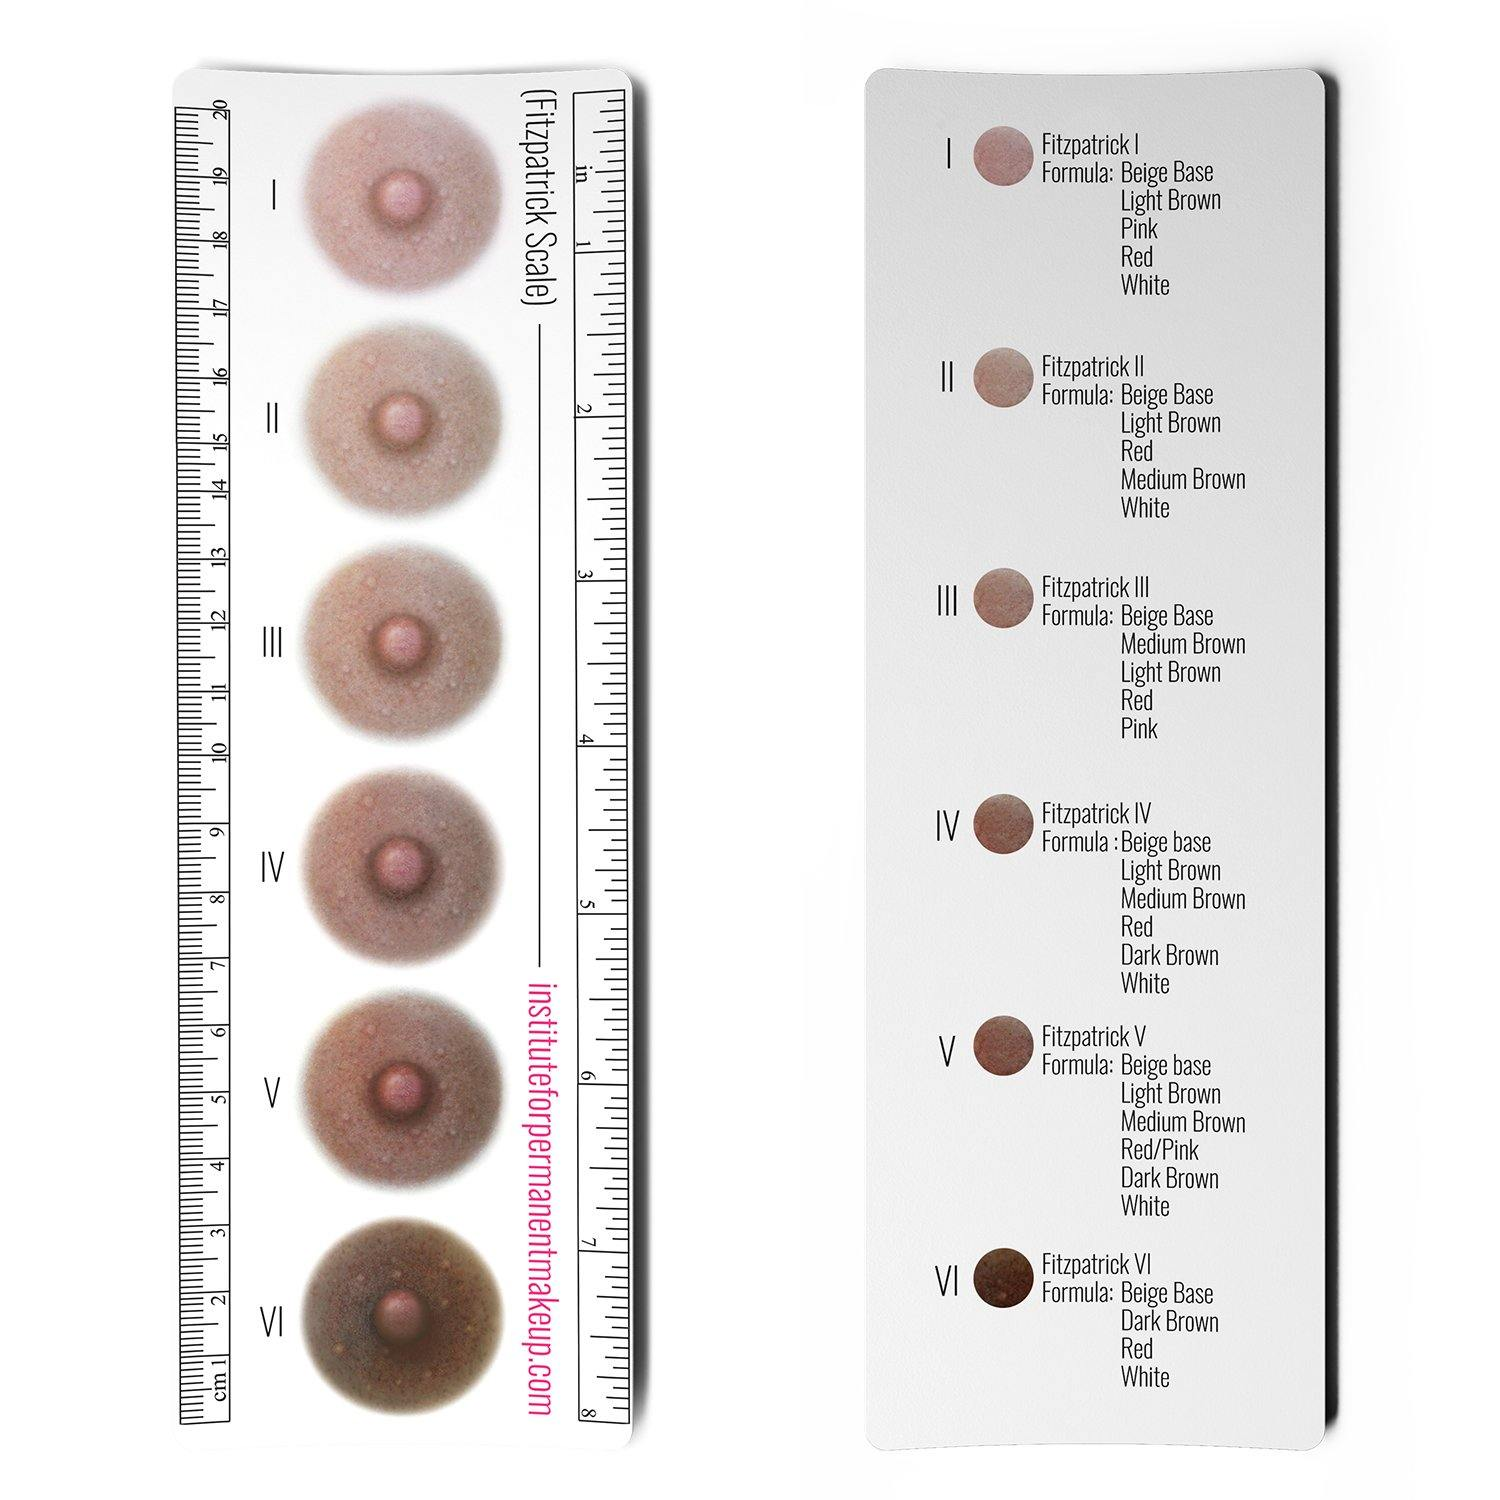 Fitzpatrick Scale Areola Color Ruler